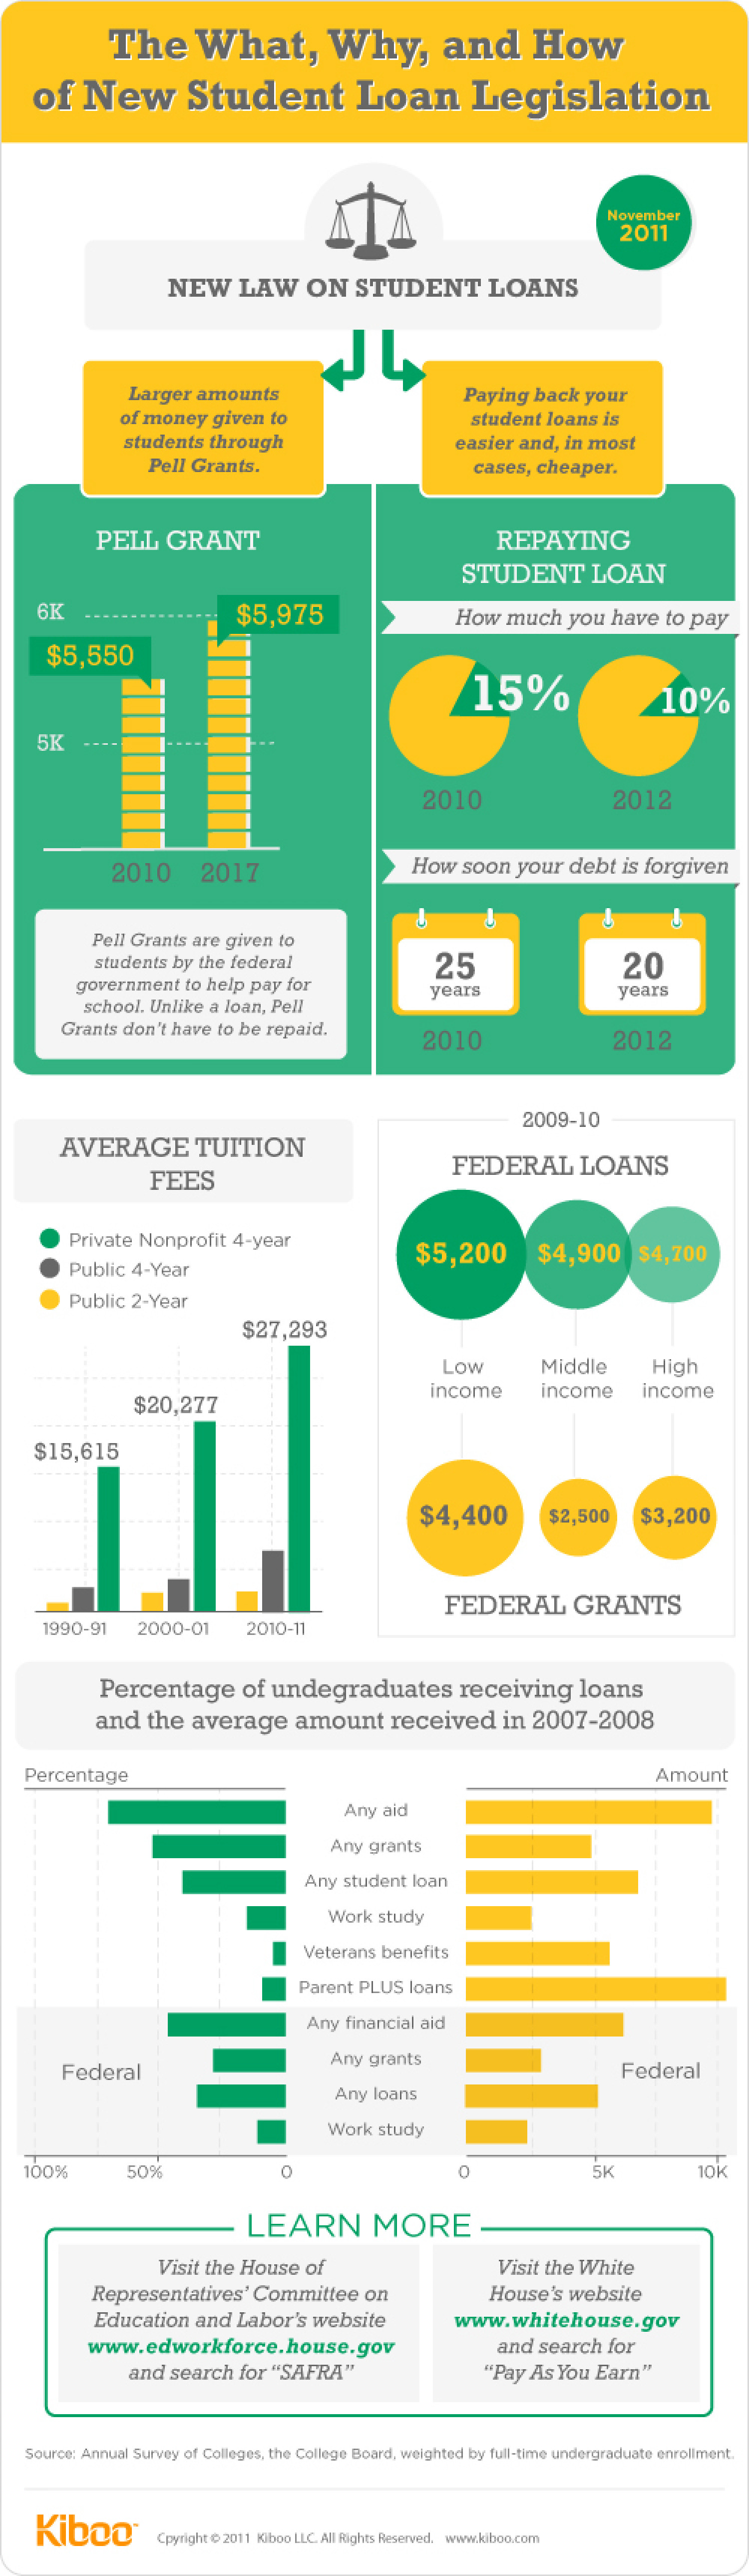 The What, Why, and How of New Student Loan Legislation Infographic